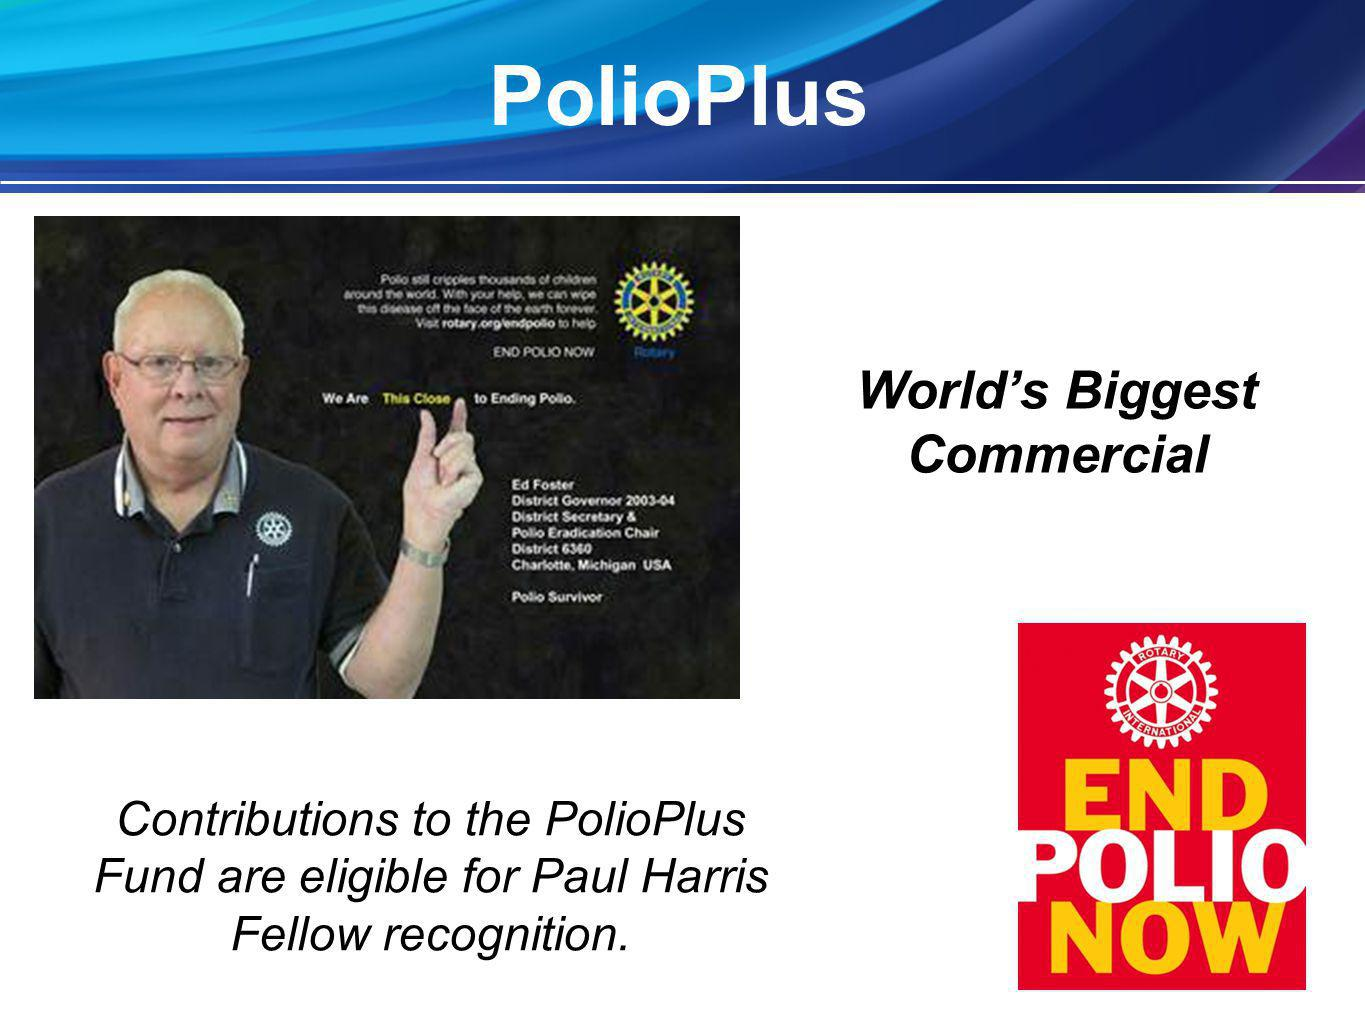 PolioPlus Worlds Biggest Commercial Contributions to the PolioPlus Fund are eligible for Paul Harris Fellow recognition.